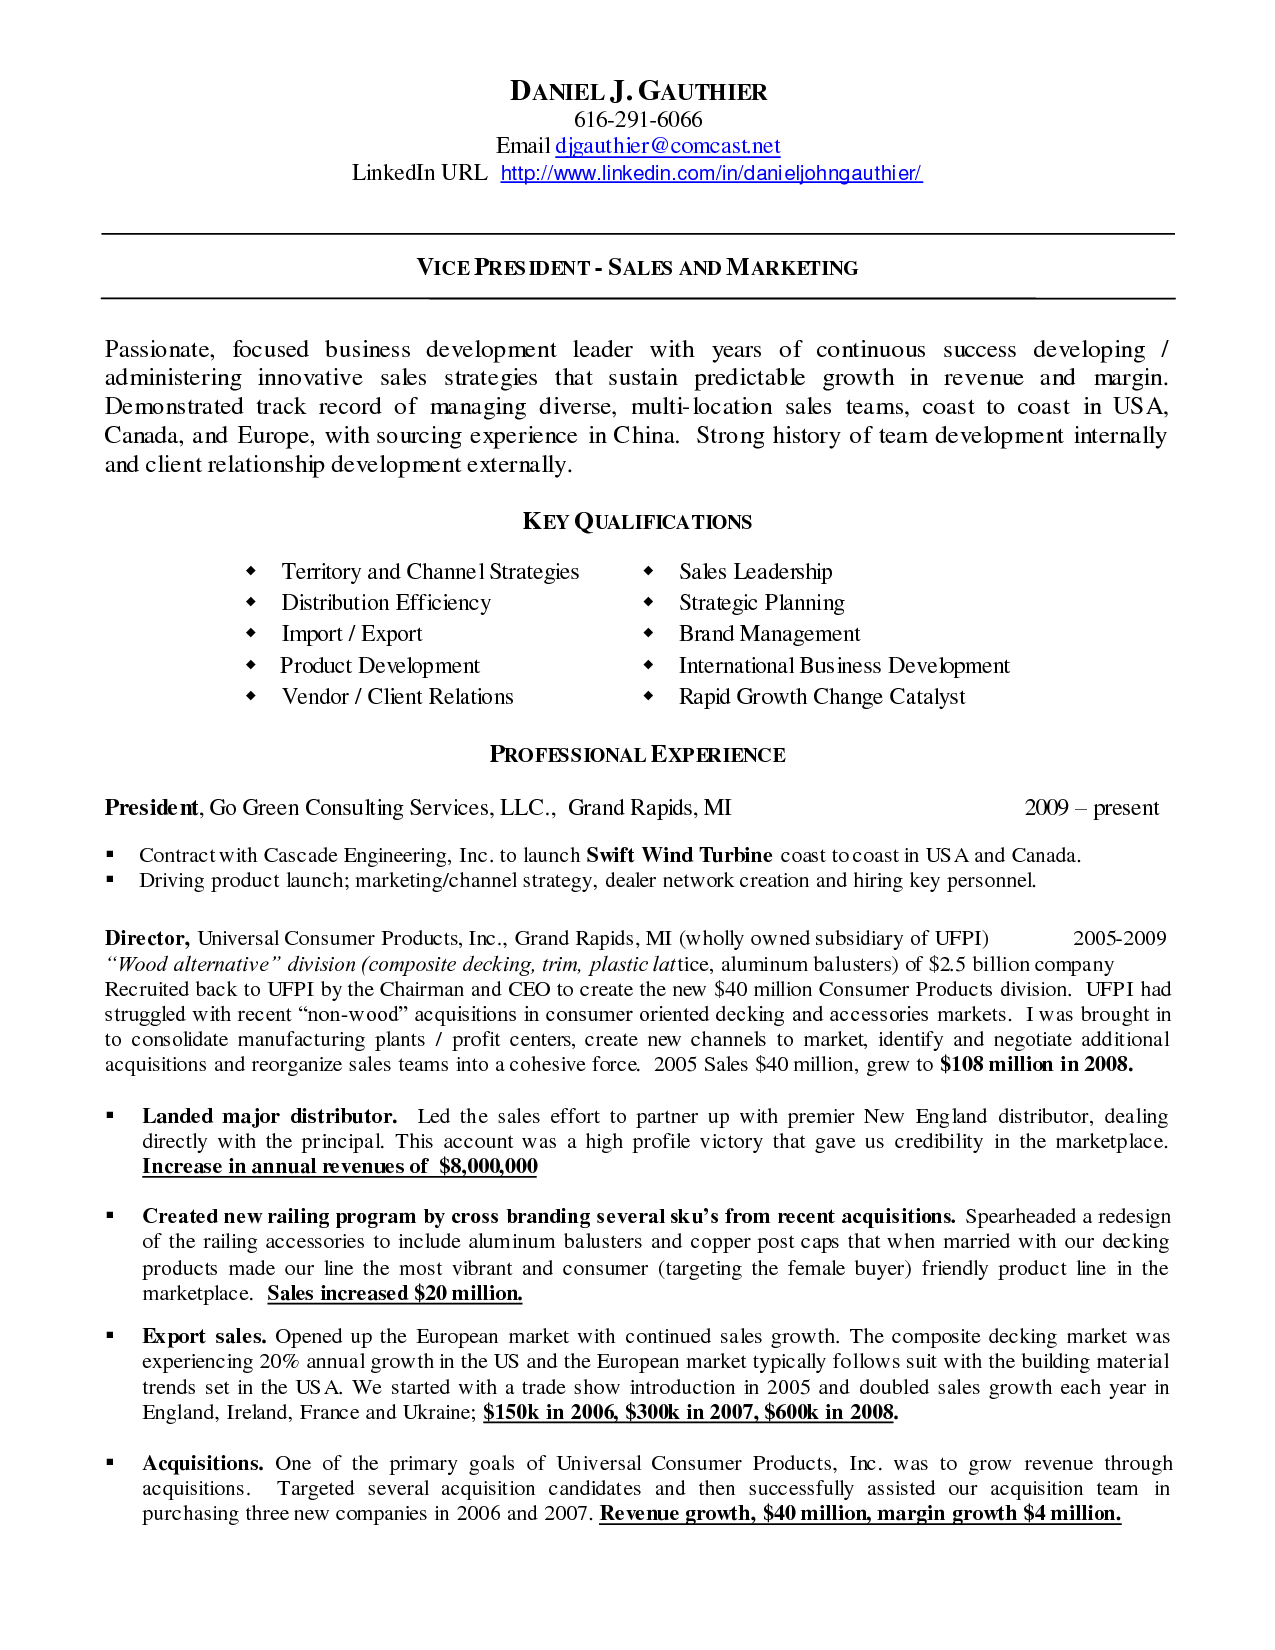 Linkedin Resume Template.Linkedin Resume Templates Resume Examples Resume